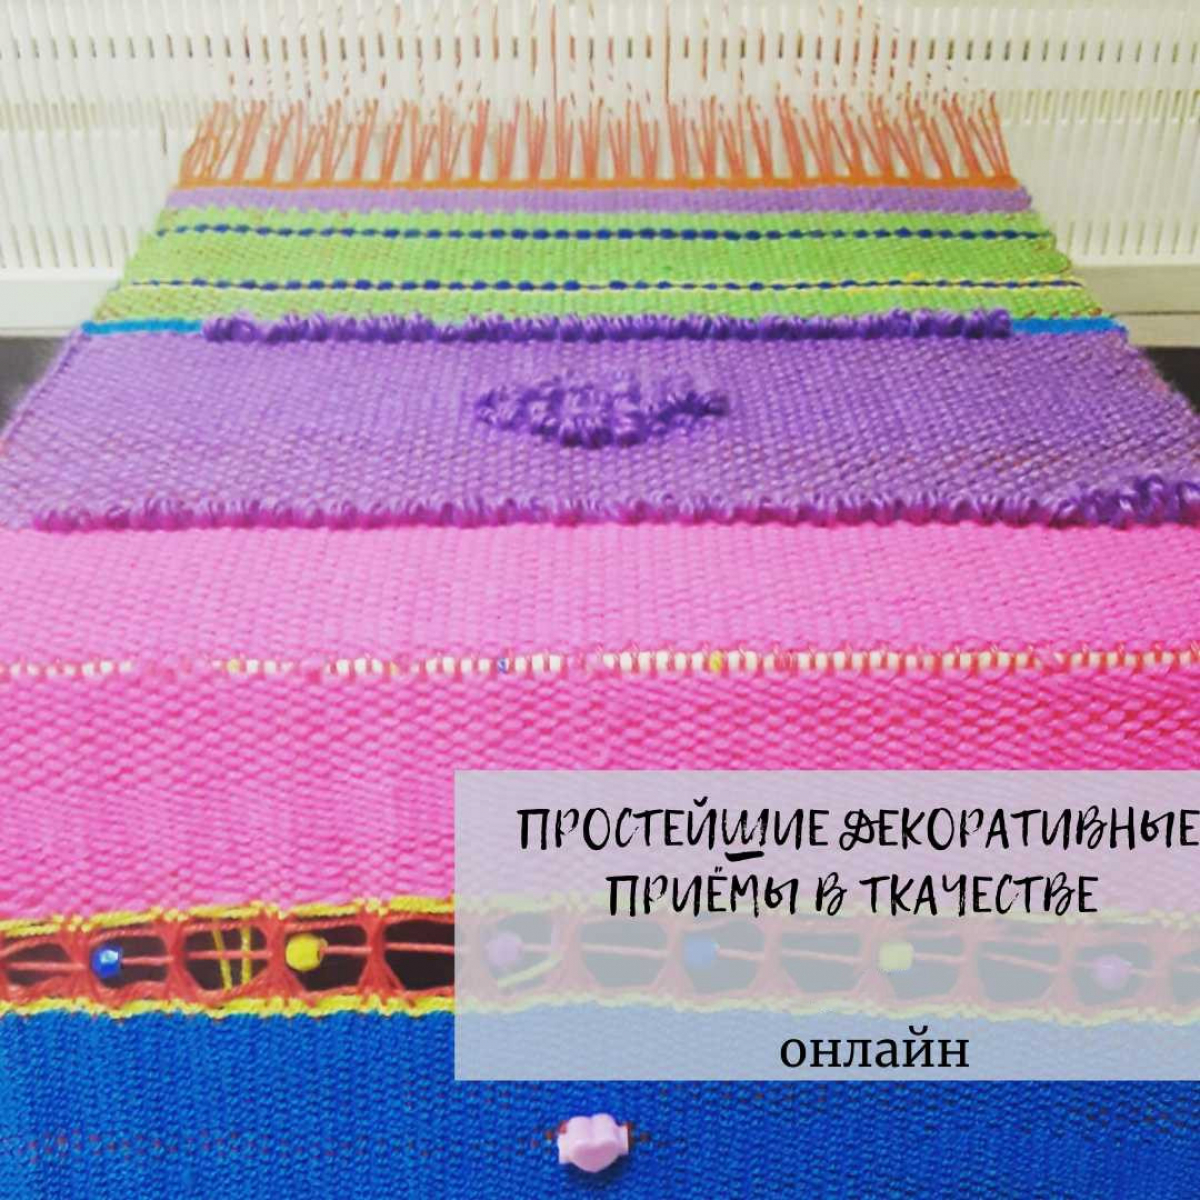 6 lessons of decorative weaving